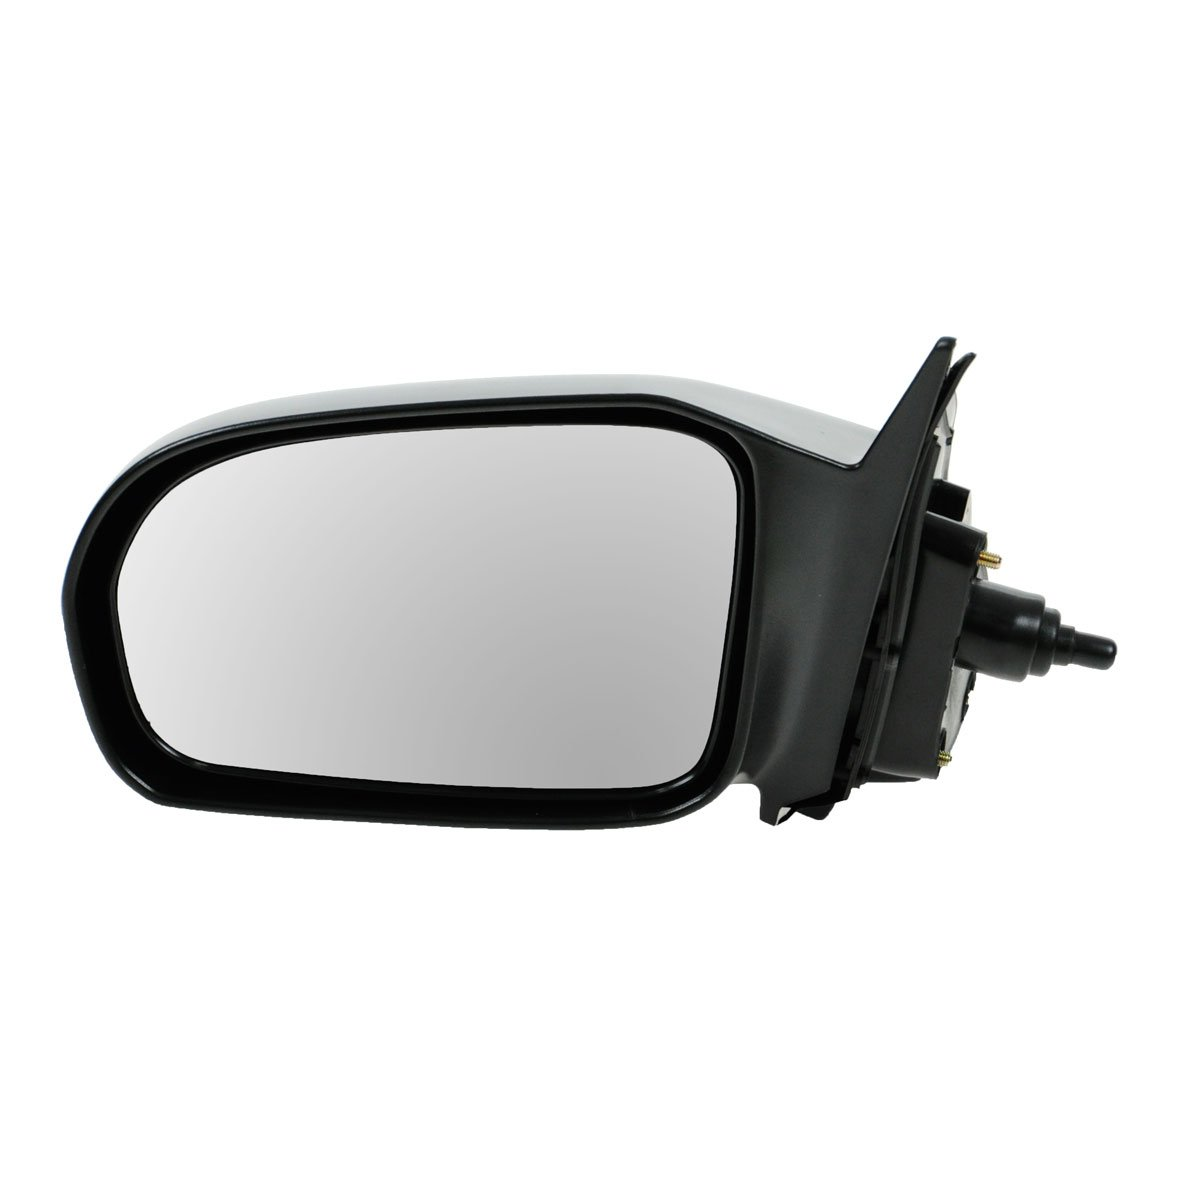 New Set of 2 LH /& RH Side Heated Power Mirror Fits Honda Civic Coupe Model